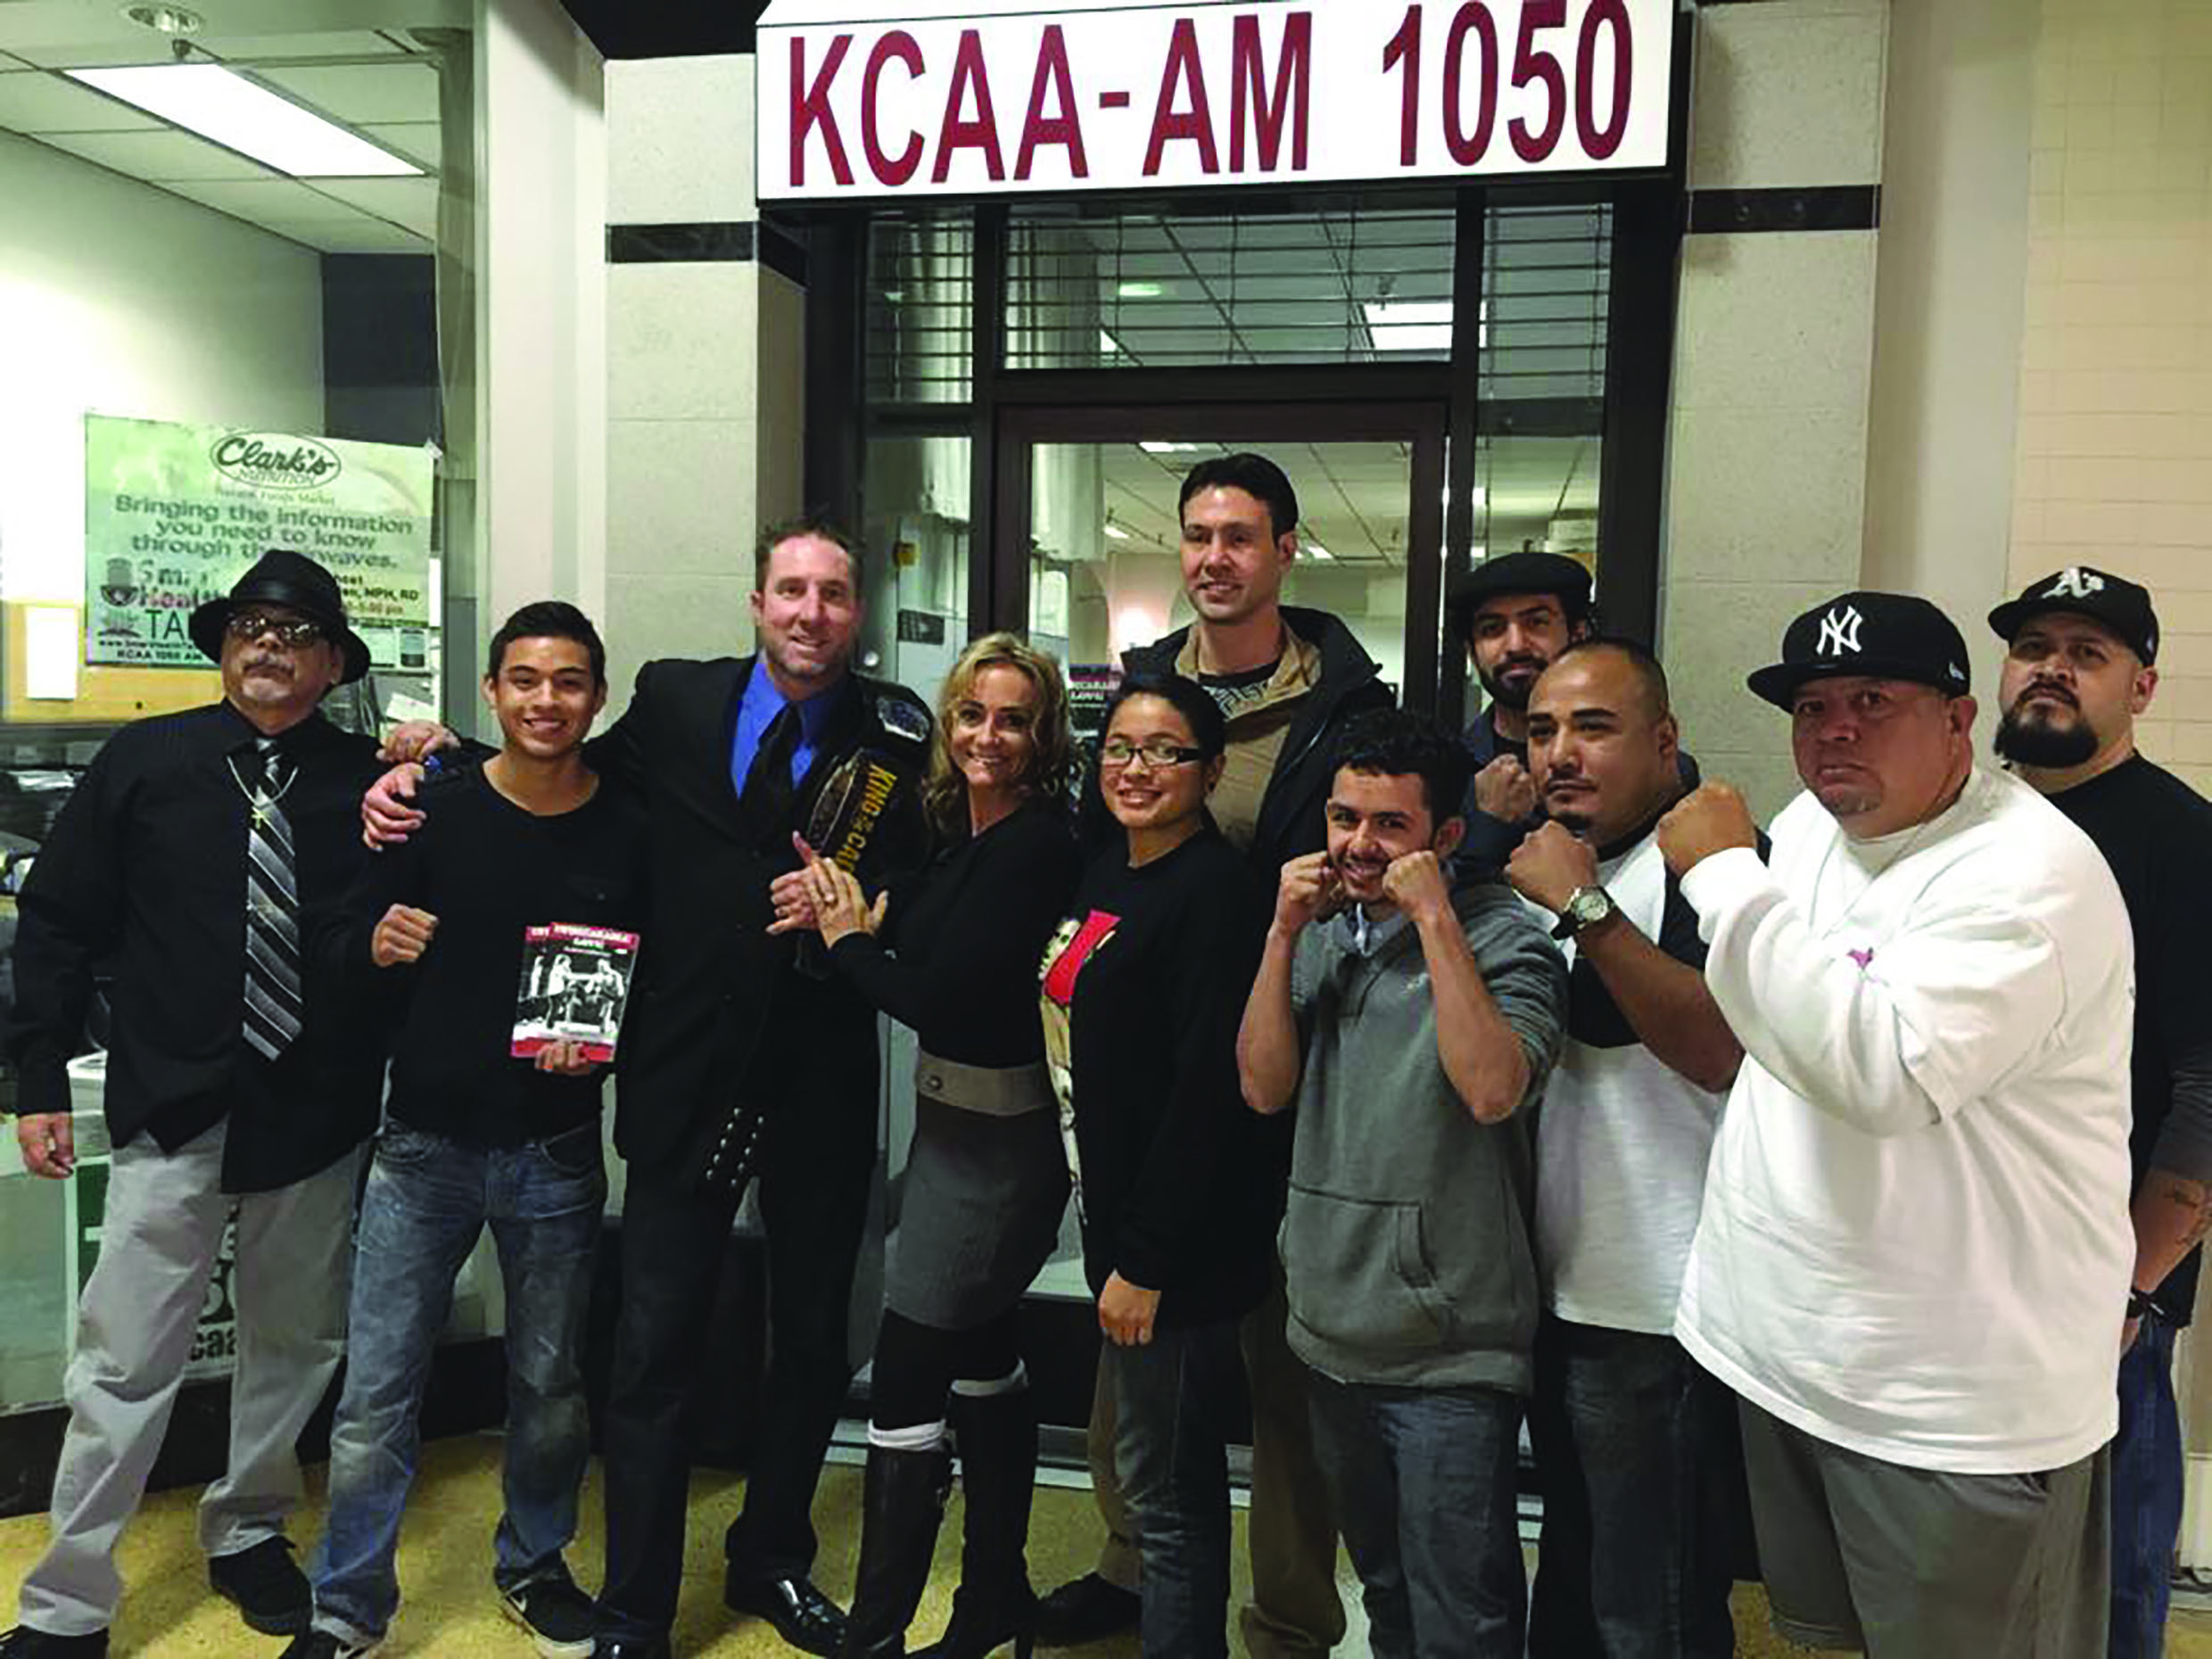 Members of the PAL Boxing Gym in Colton take a photo with MMA fighter Brian Warren (left with belt) and KCAA AM 1050 Radio Special Events Manager Danny Alcaraz (far left)